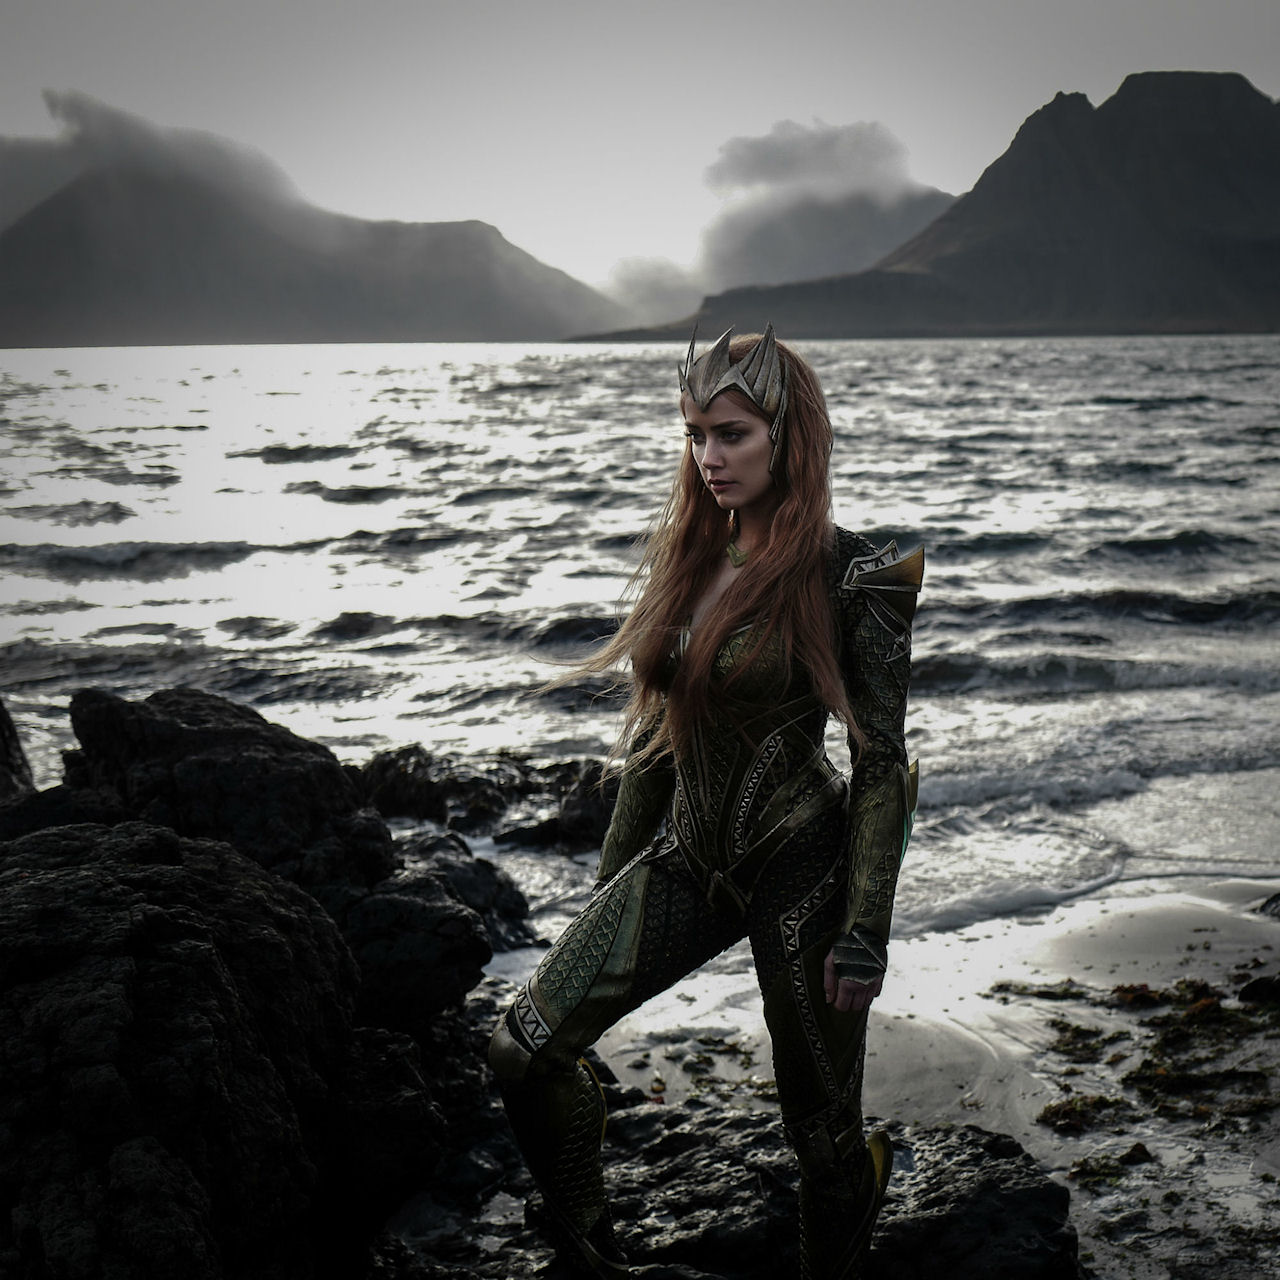 Amber Heard stars as Mera in JUSTICE LEAGUE. (Photo courtesy of Warner Bros. Pictures & DC Comics).